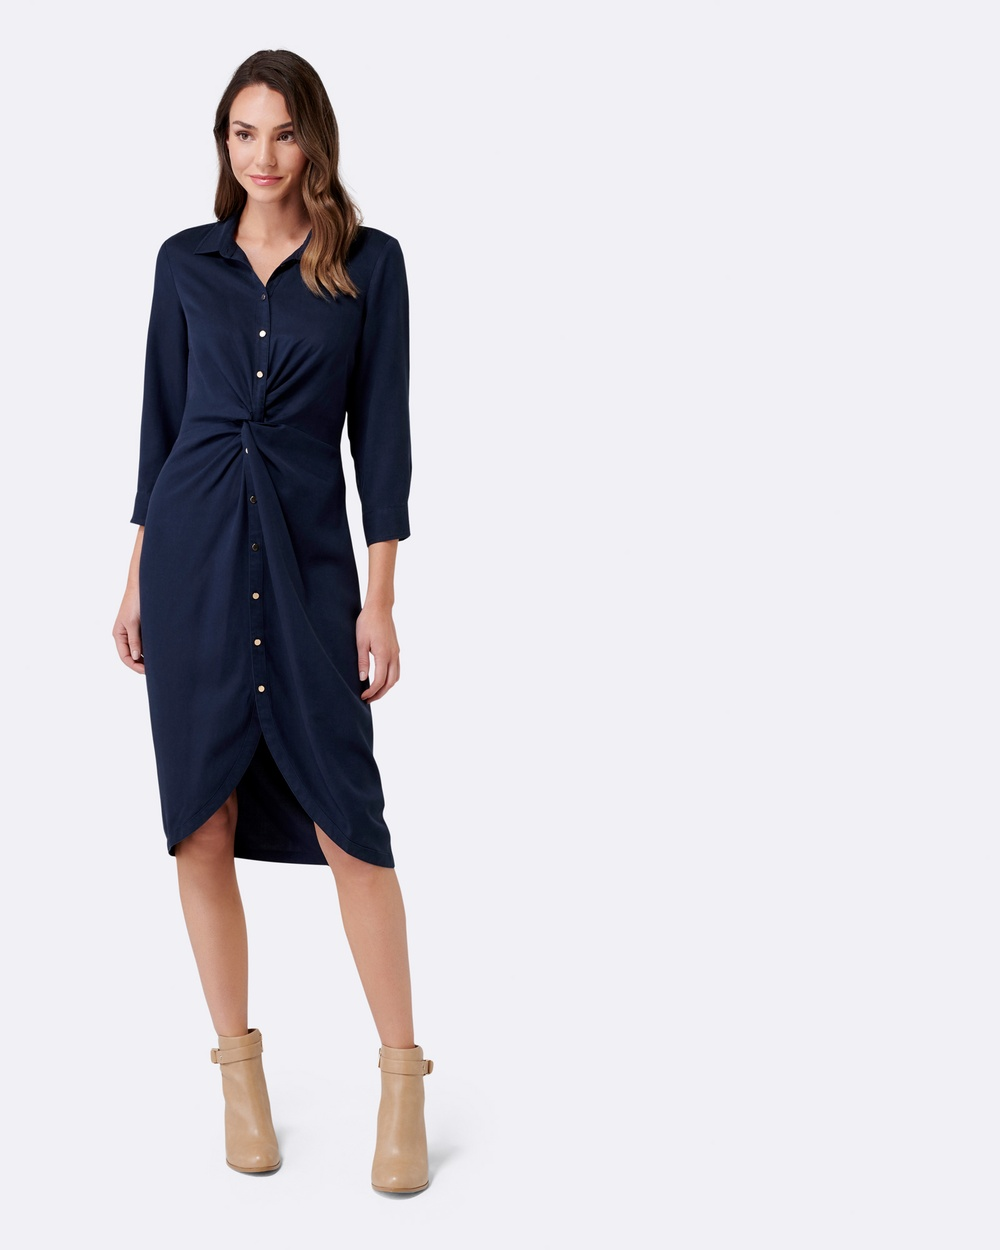 Forever New Freya Twist Front Shirt Dress Dresses Navy Freya Twist Front Shirt Dress